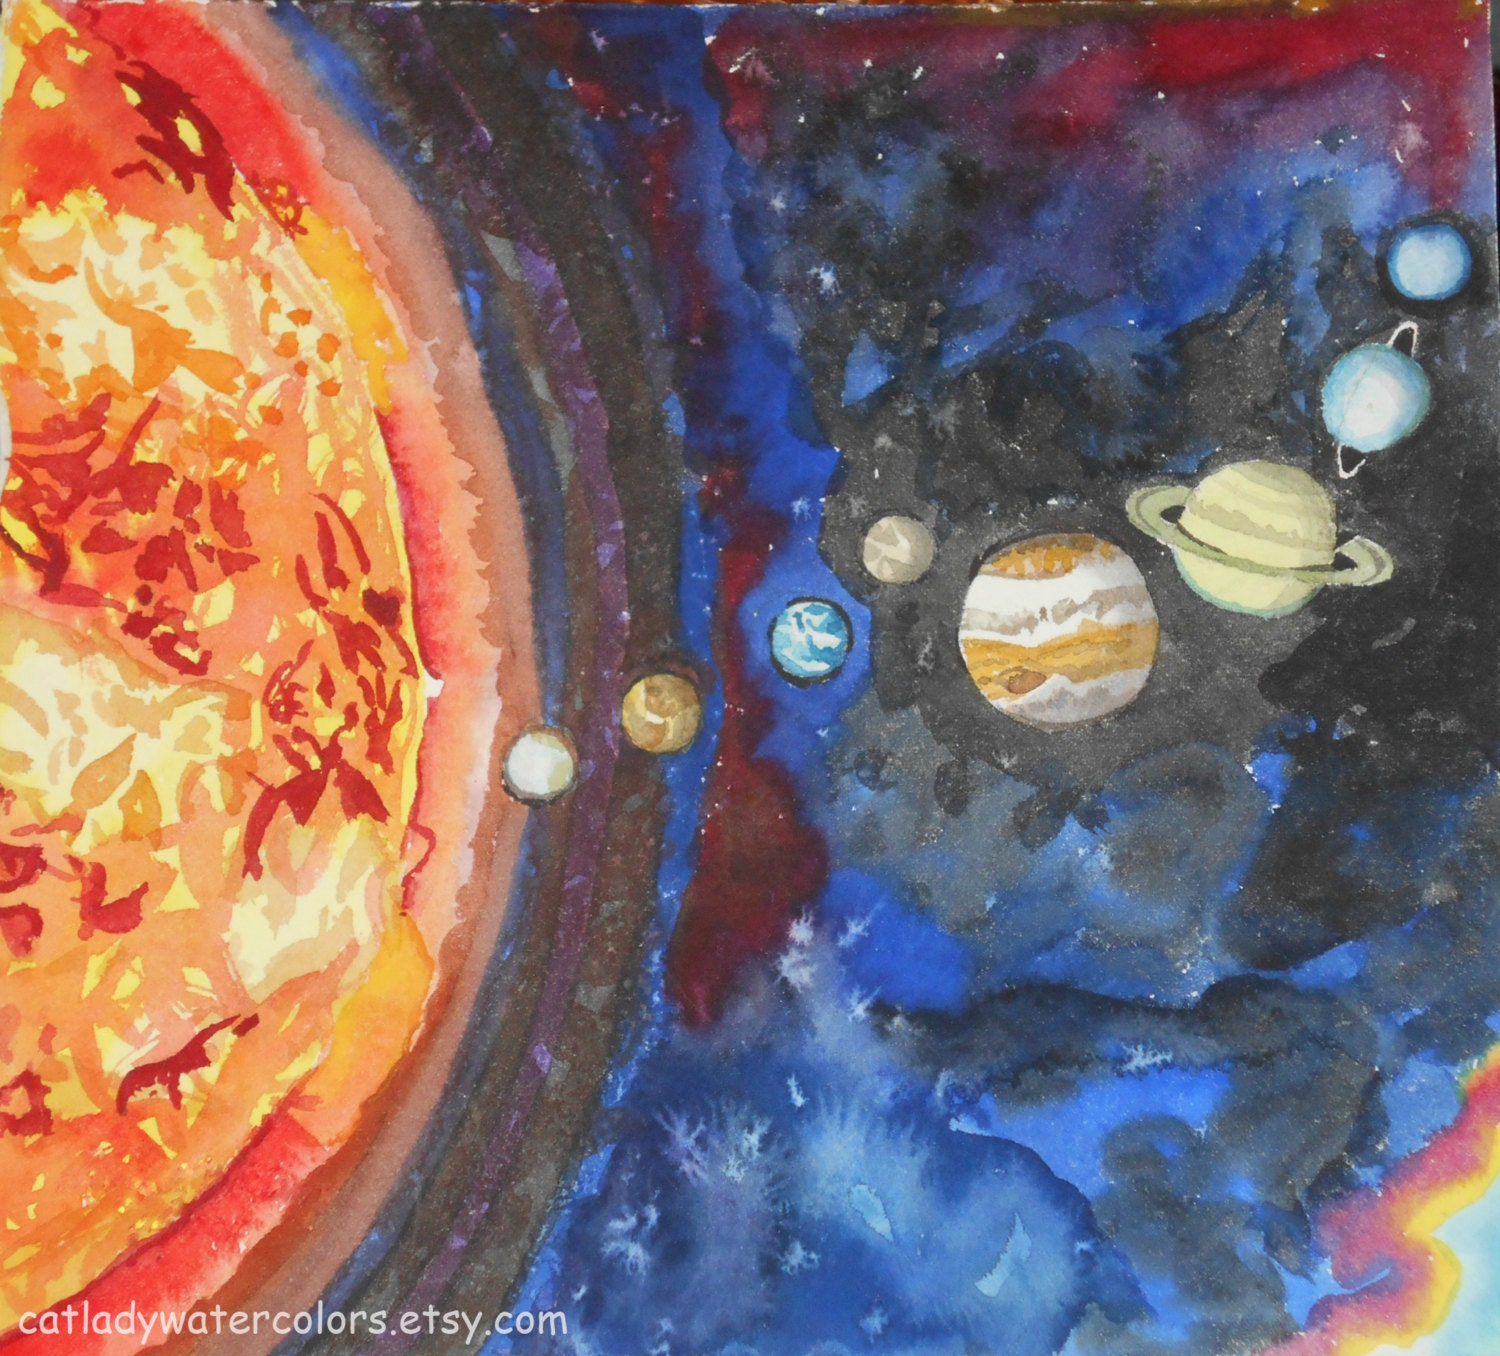 solar system paintings - photo #37